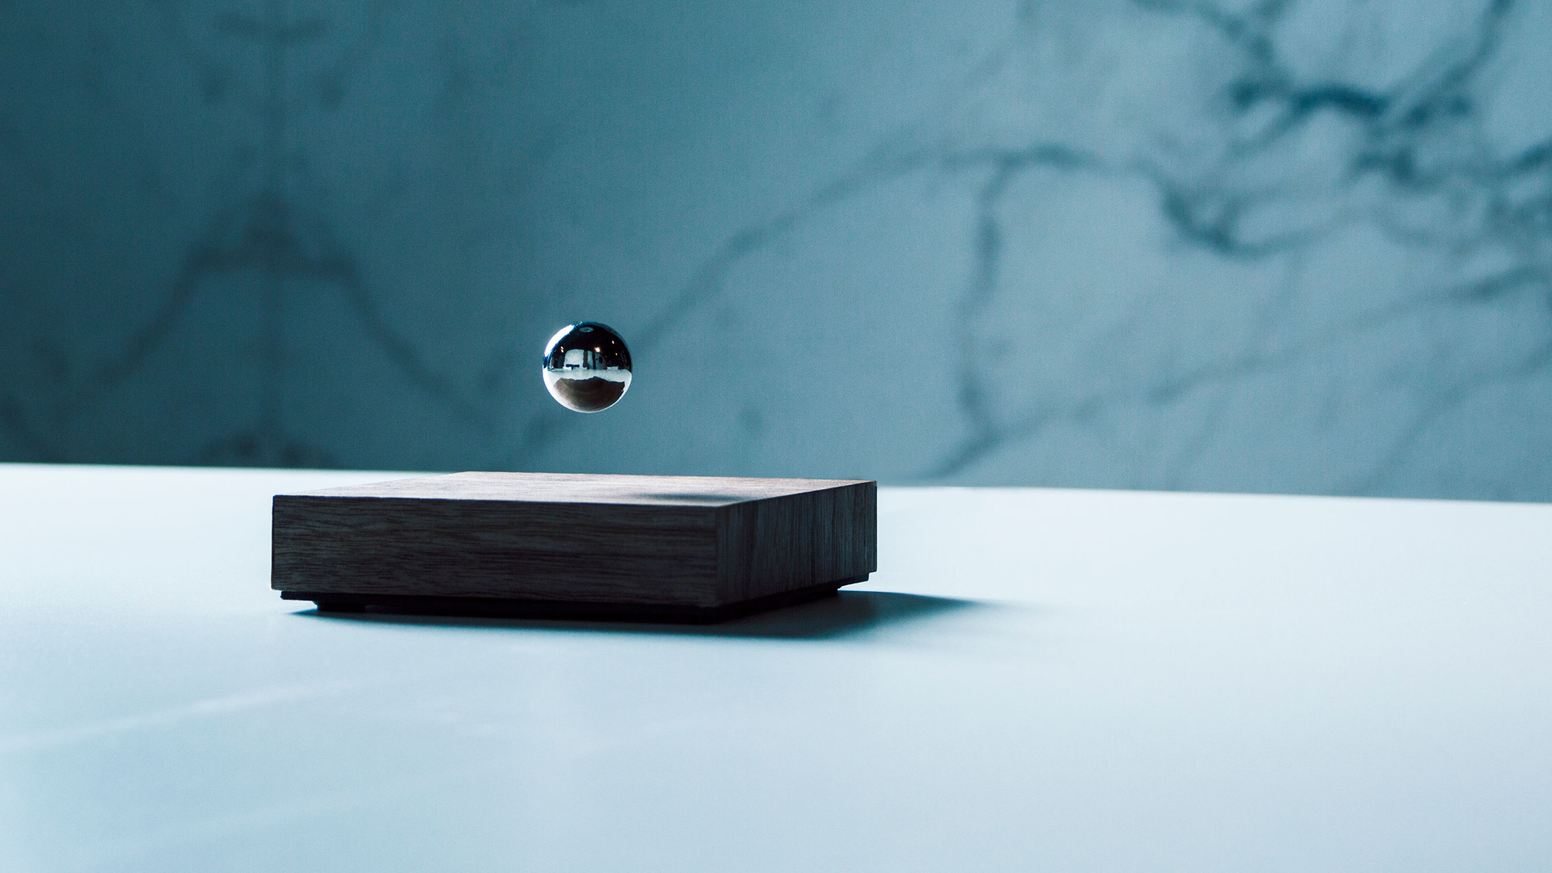 Visually mesmerizing, strangely satisfying, Buda Ball hovers in mid-air, reminding you to stay present.